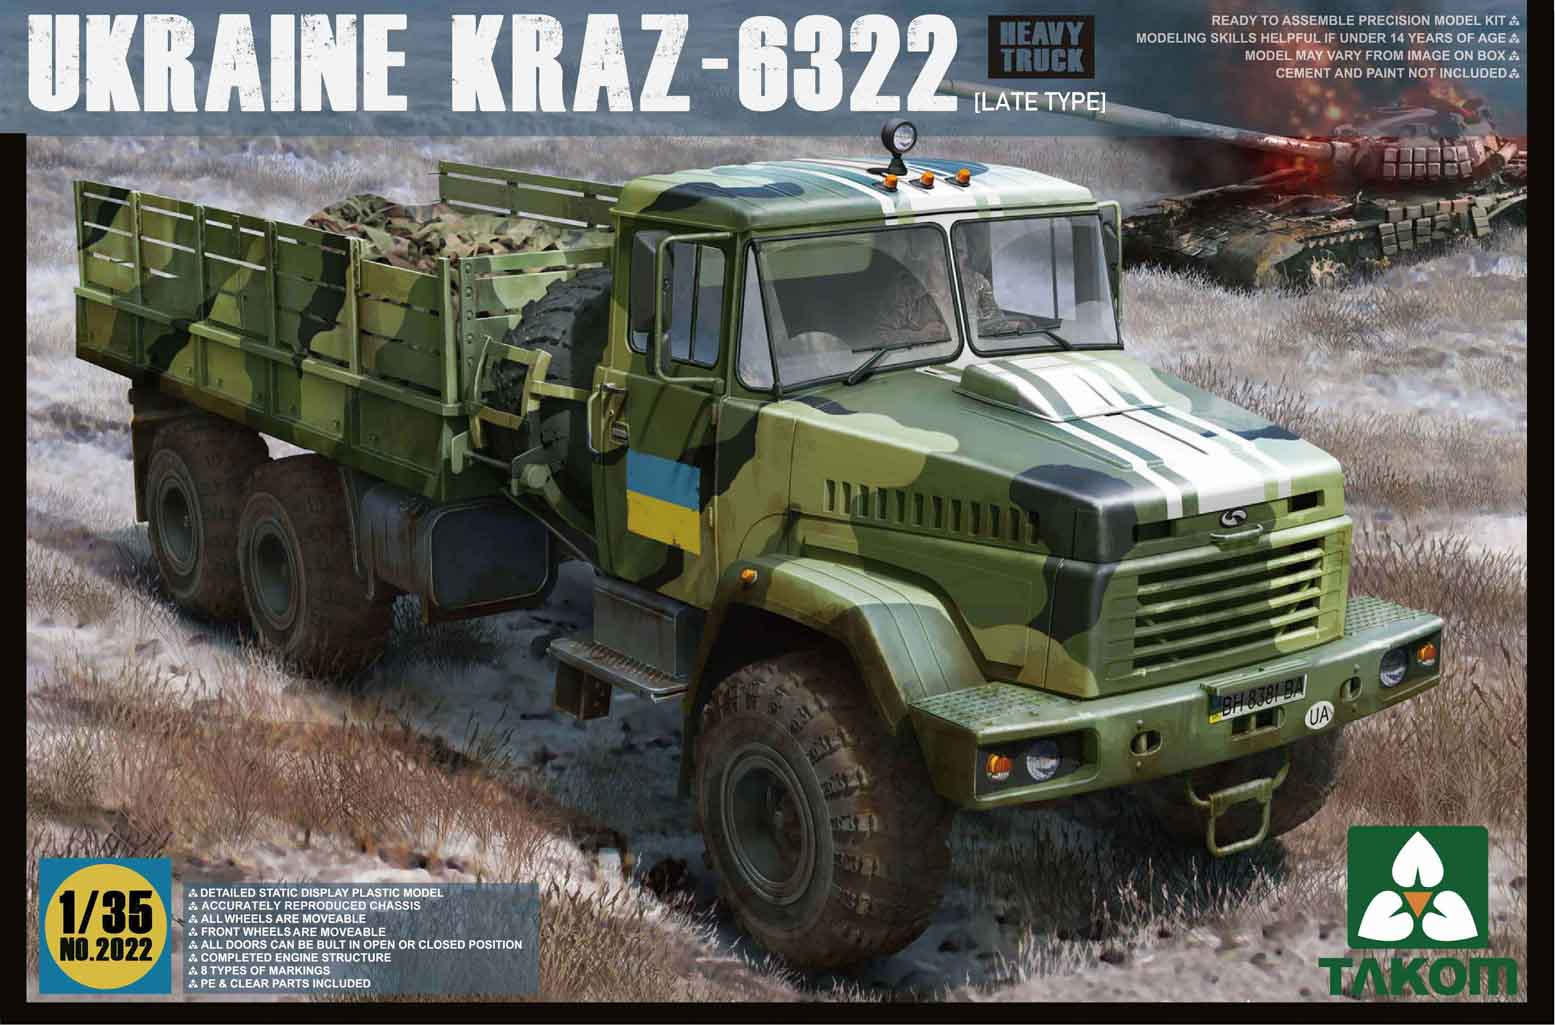 Ukraine KrAz-6322 Heavy Truck (late type)